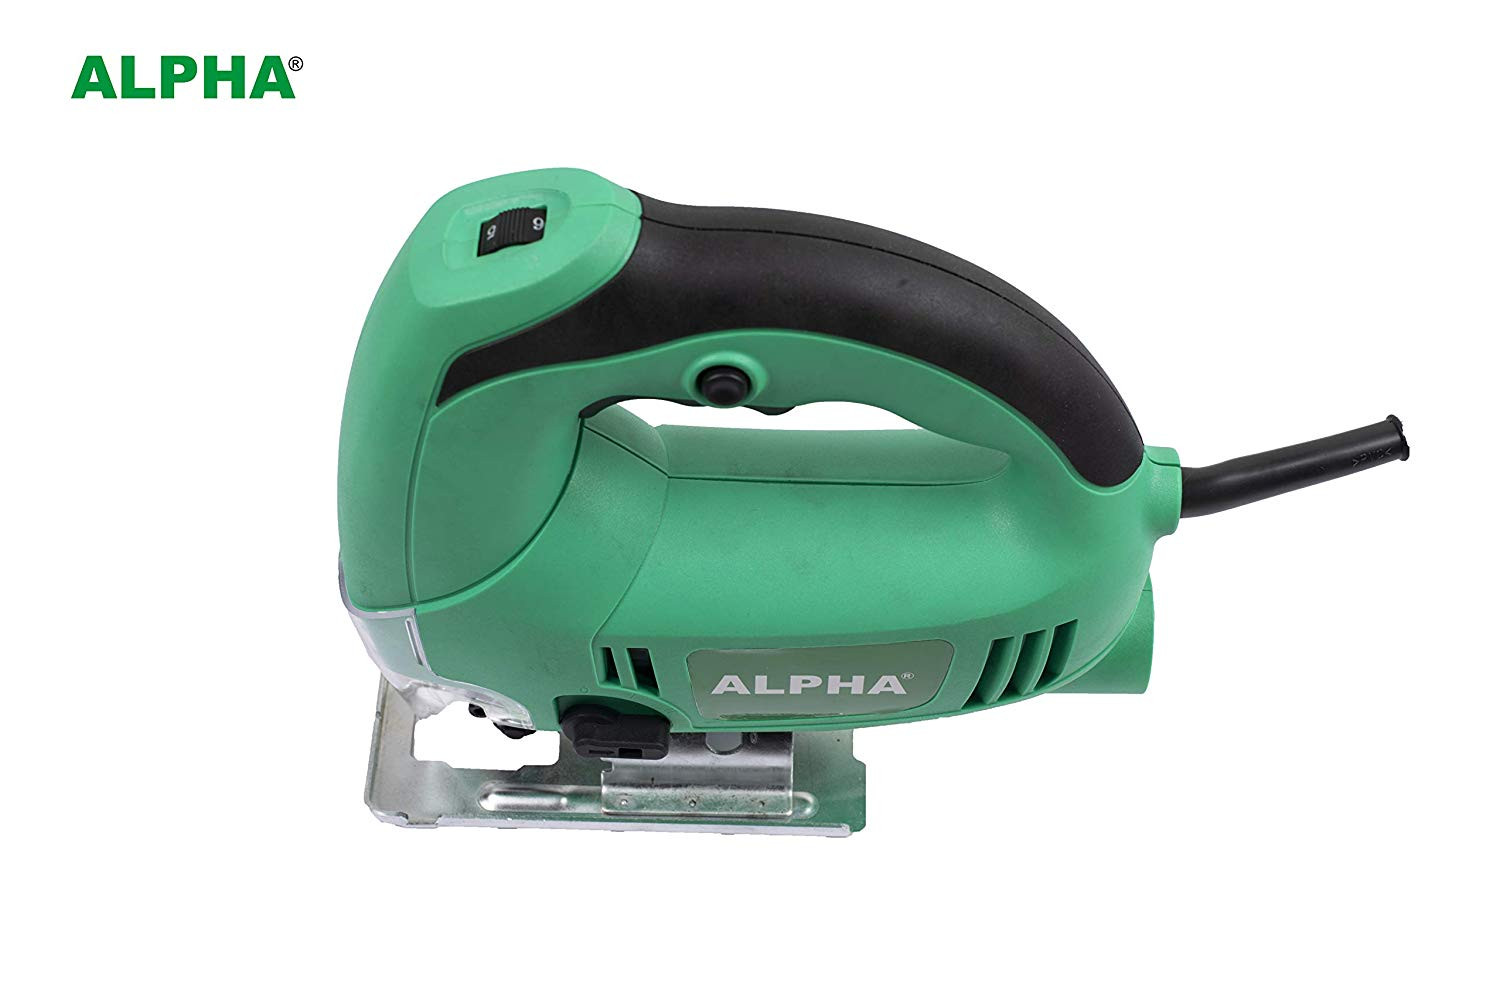 Alpha 400W Jig Saw A55061